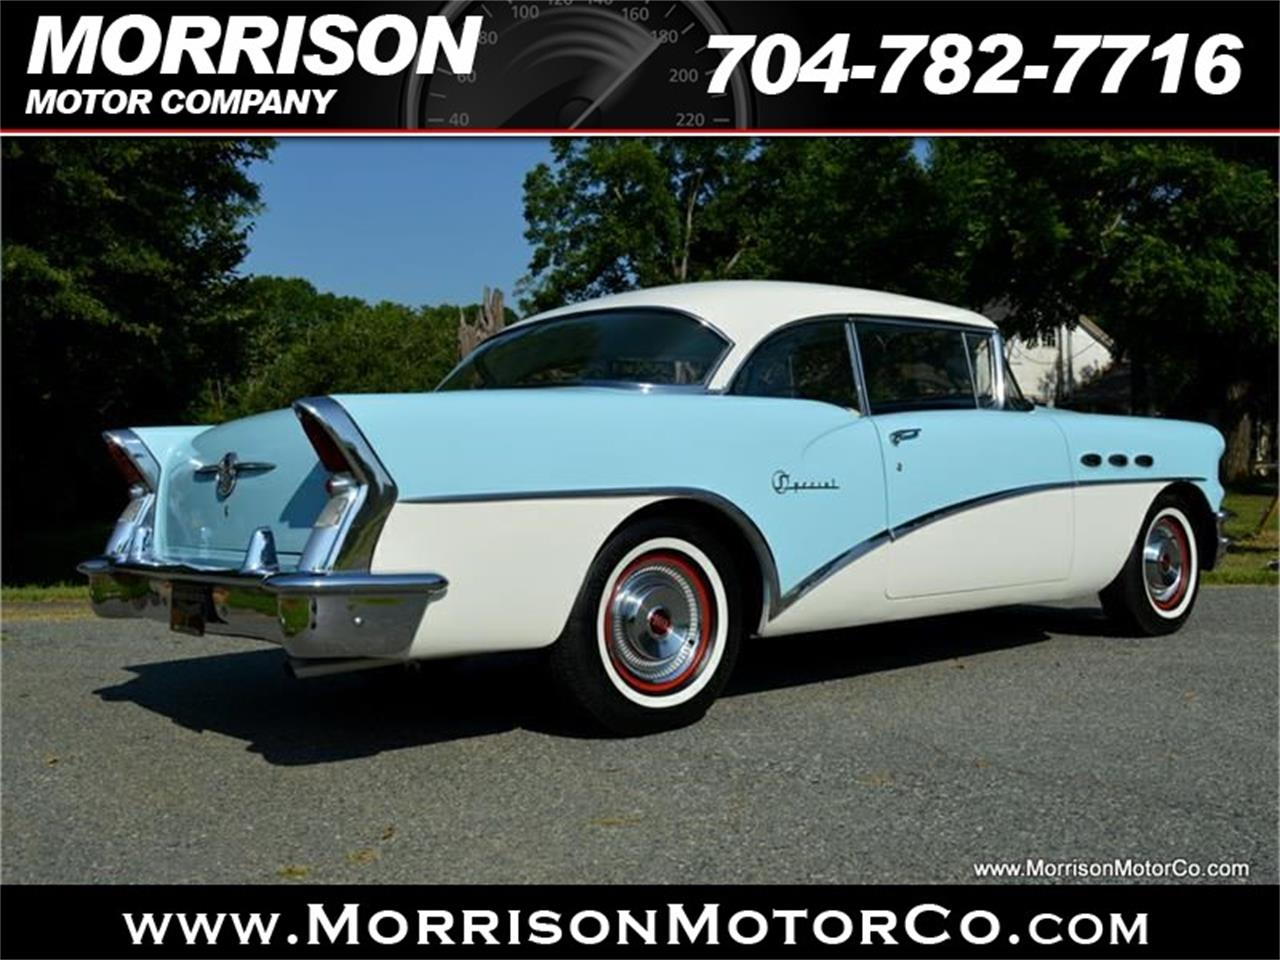 Large Picture of Classic 1956 Buick Special Riviera located in North Carolina - $22,900.00 - M8P8